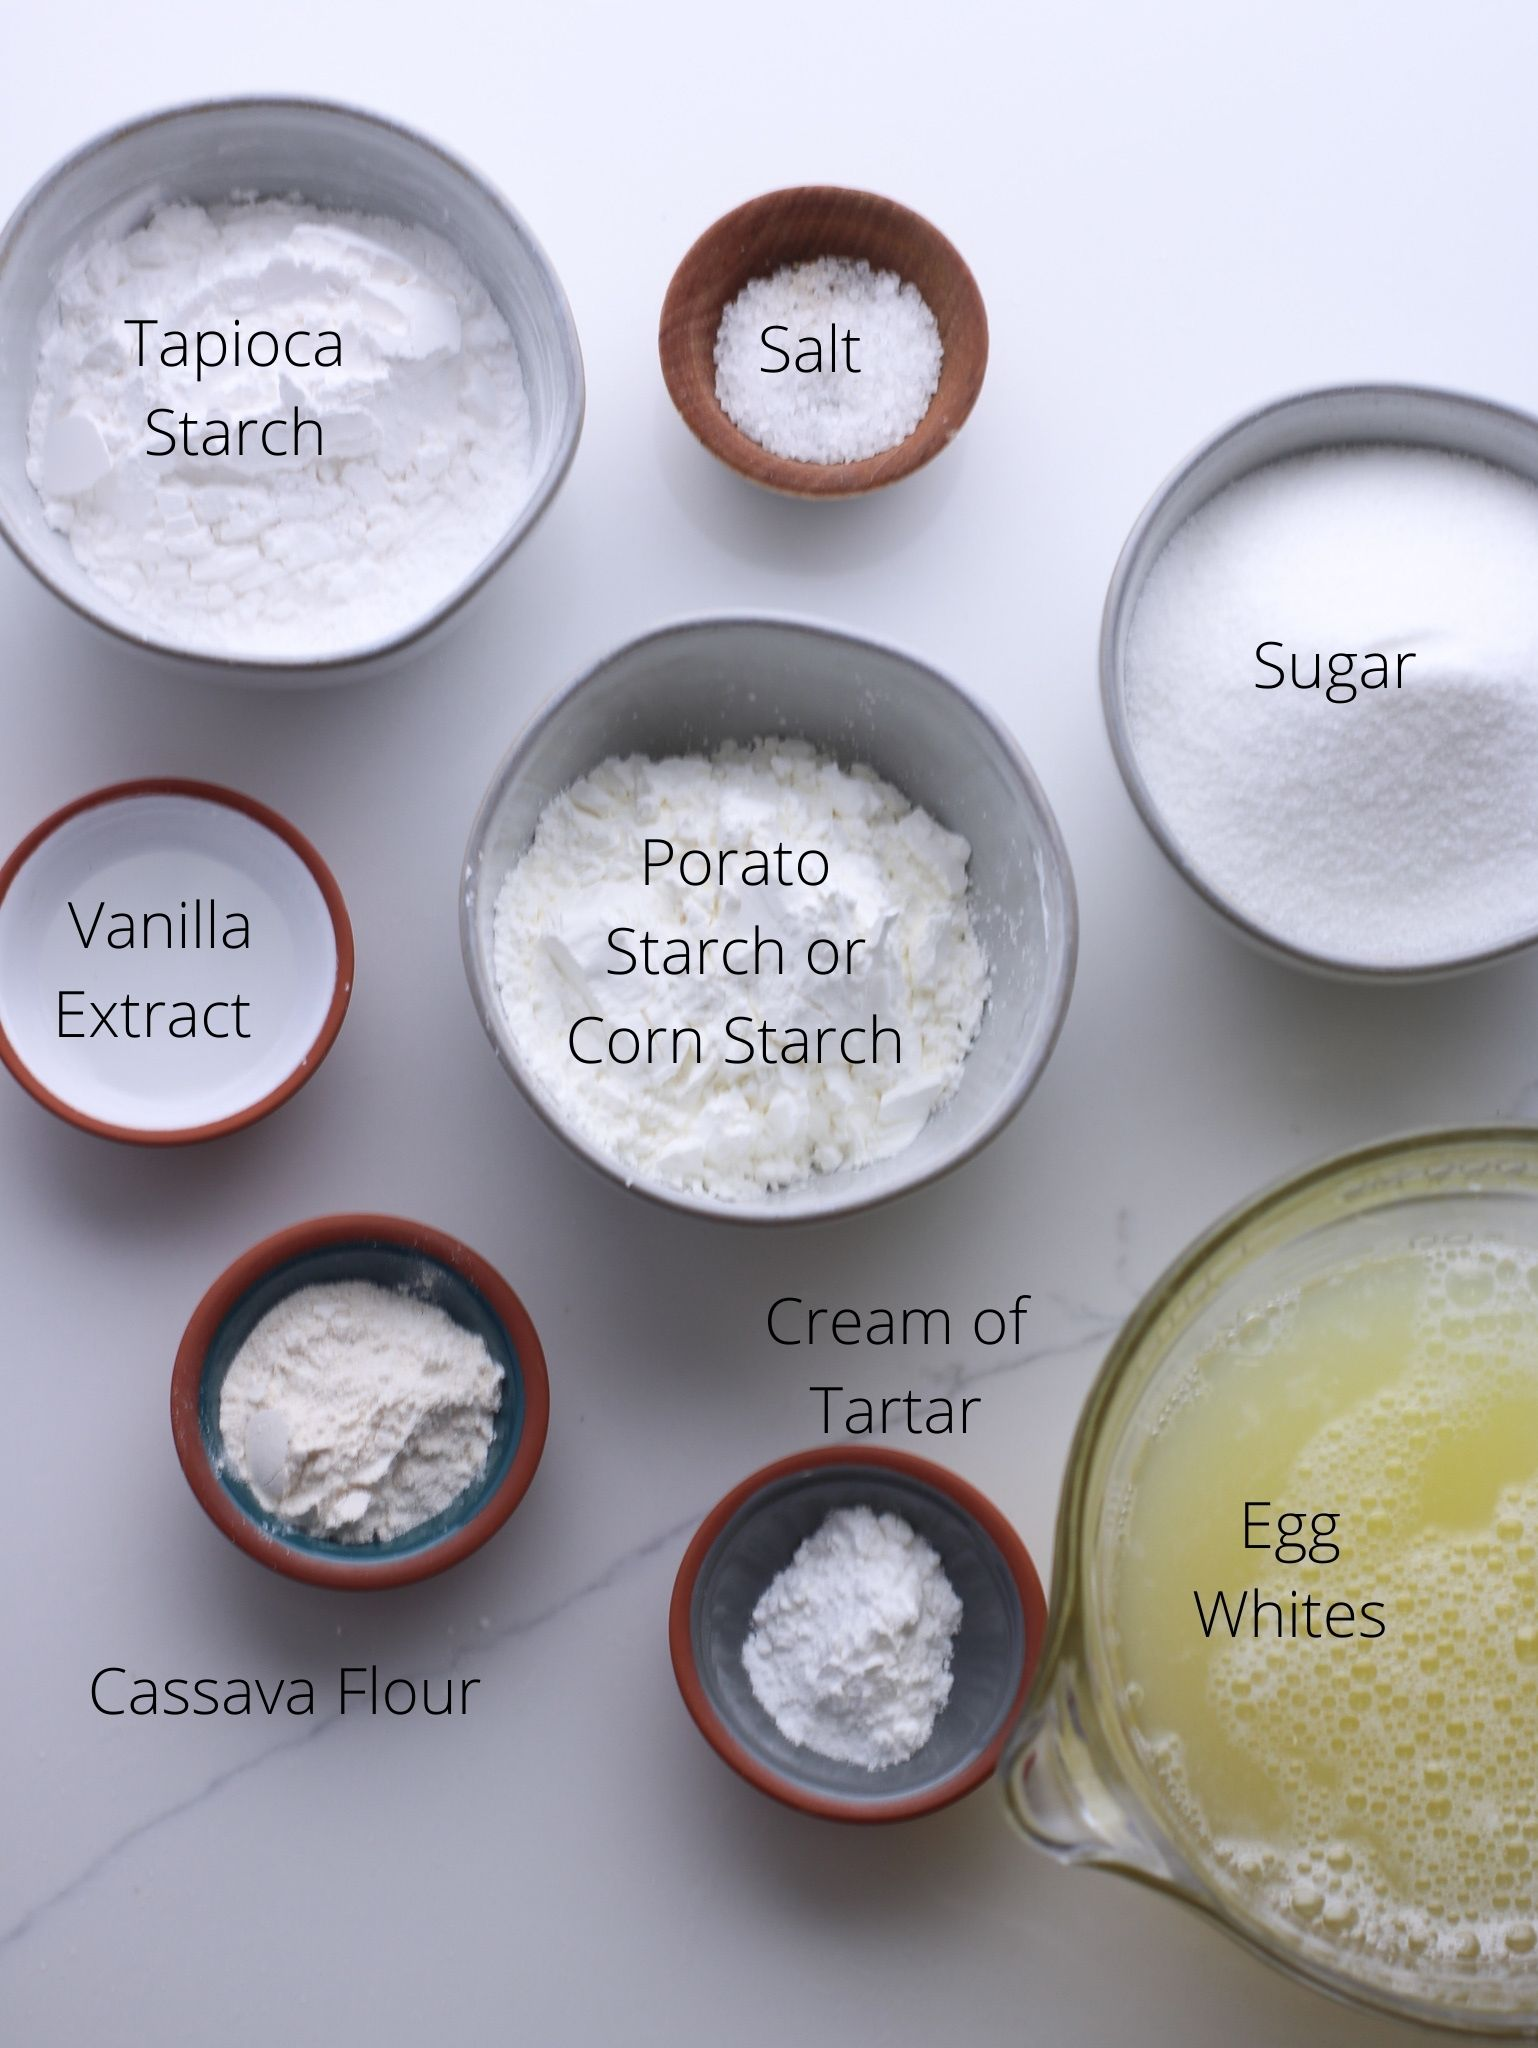 Ingredients laid out for gluten-free angel food cake including egg whites, sugar, cream of tartar, tapioca starch, potato or corn starch, cassava flour, salt and vanilla extract.